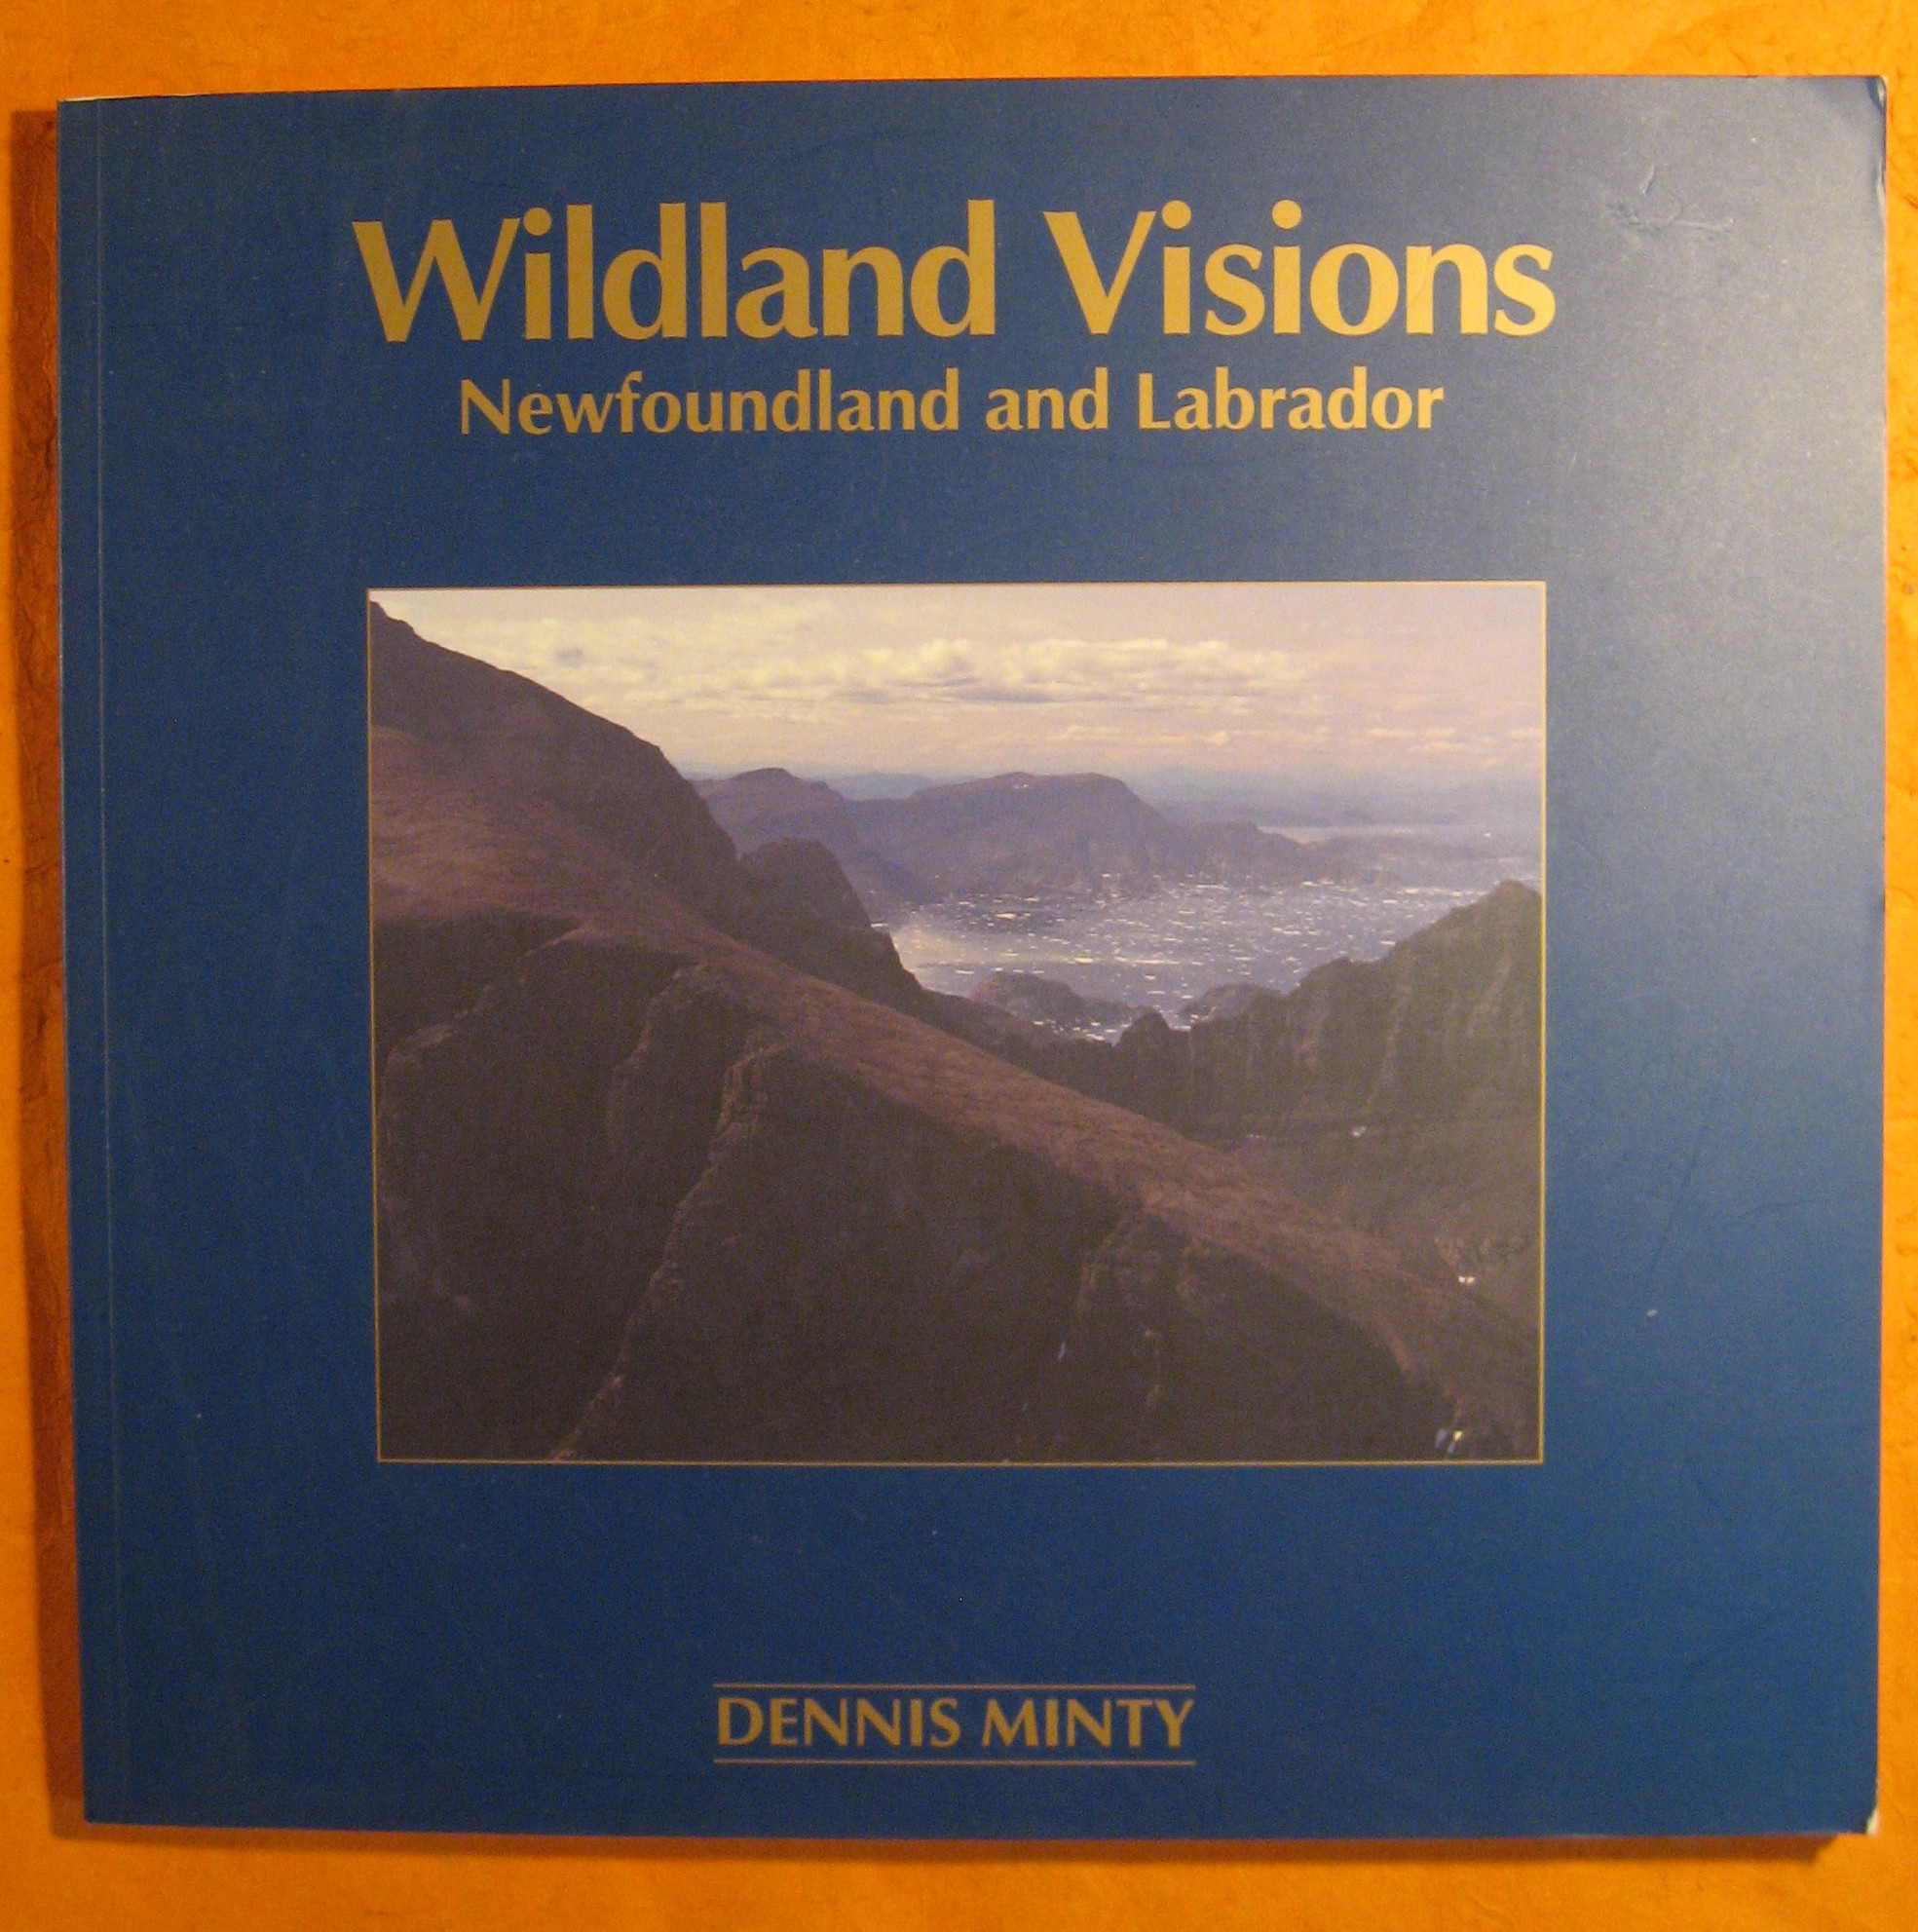 Image for Wildland Visions: Newfoundland and Labrador